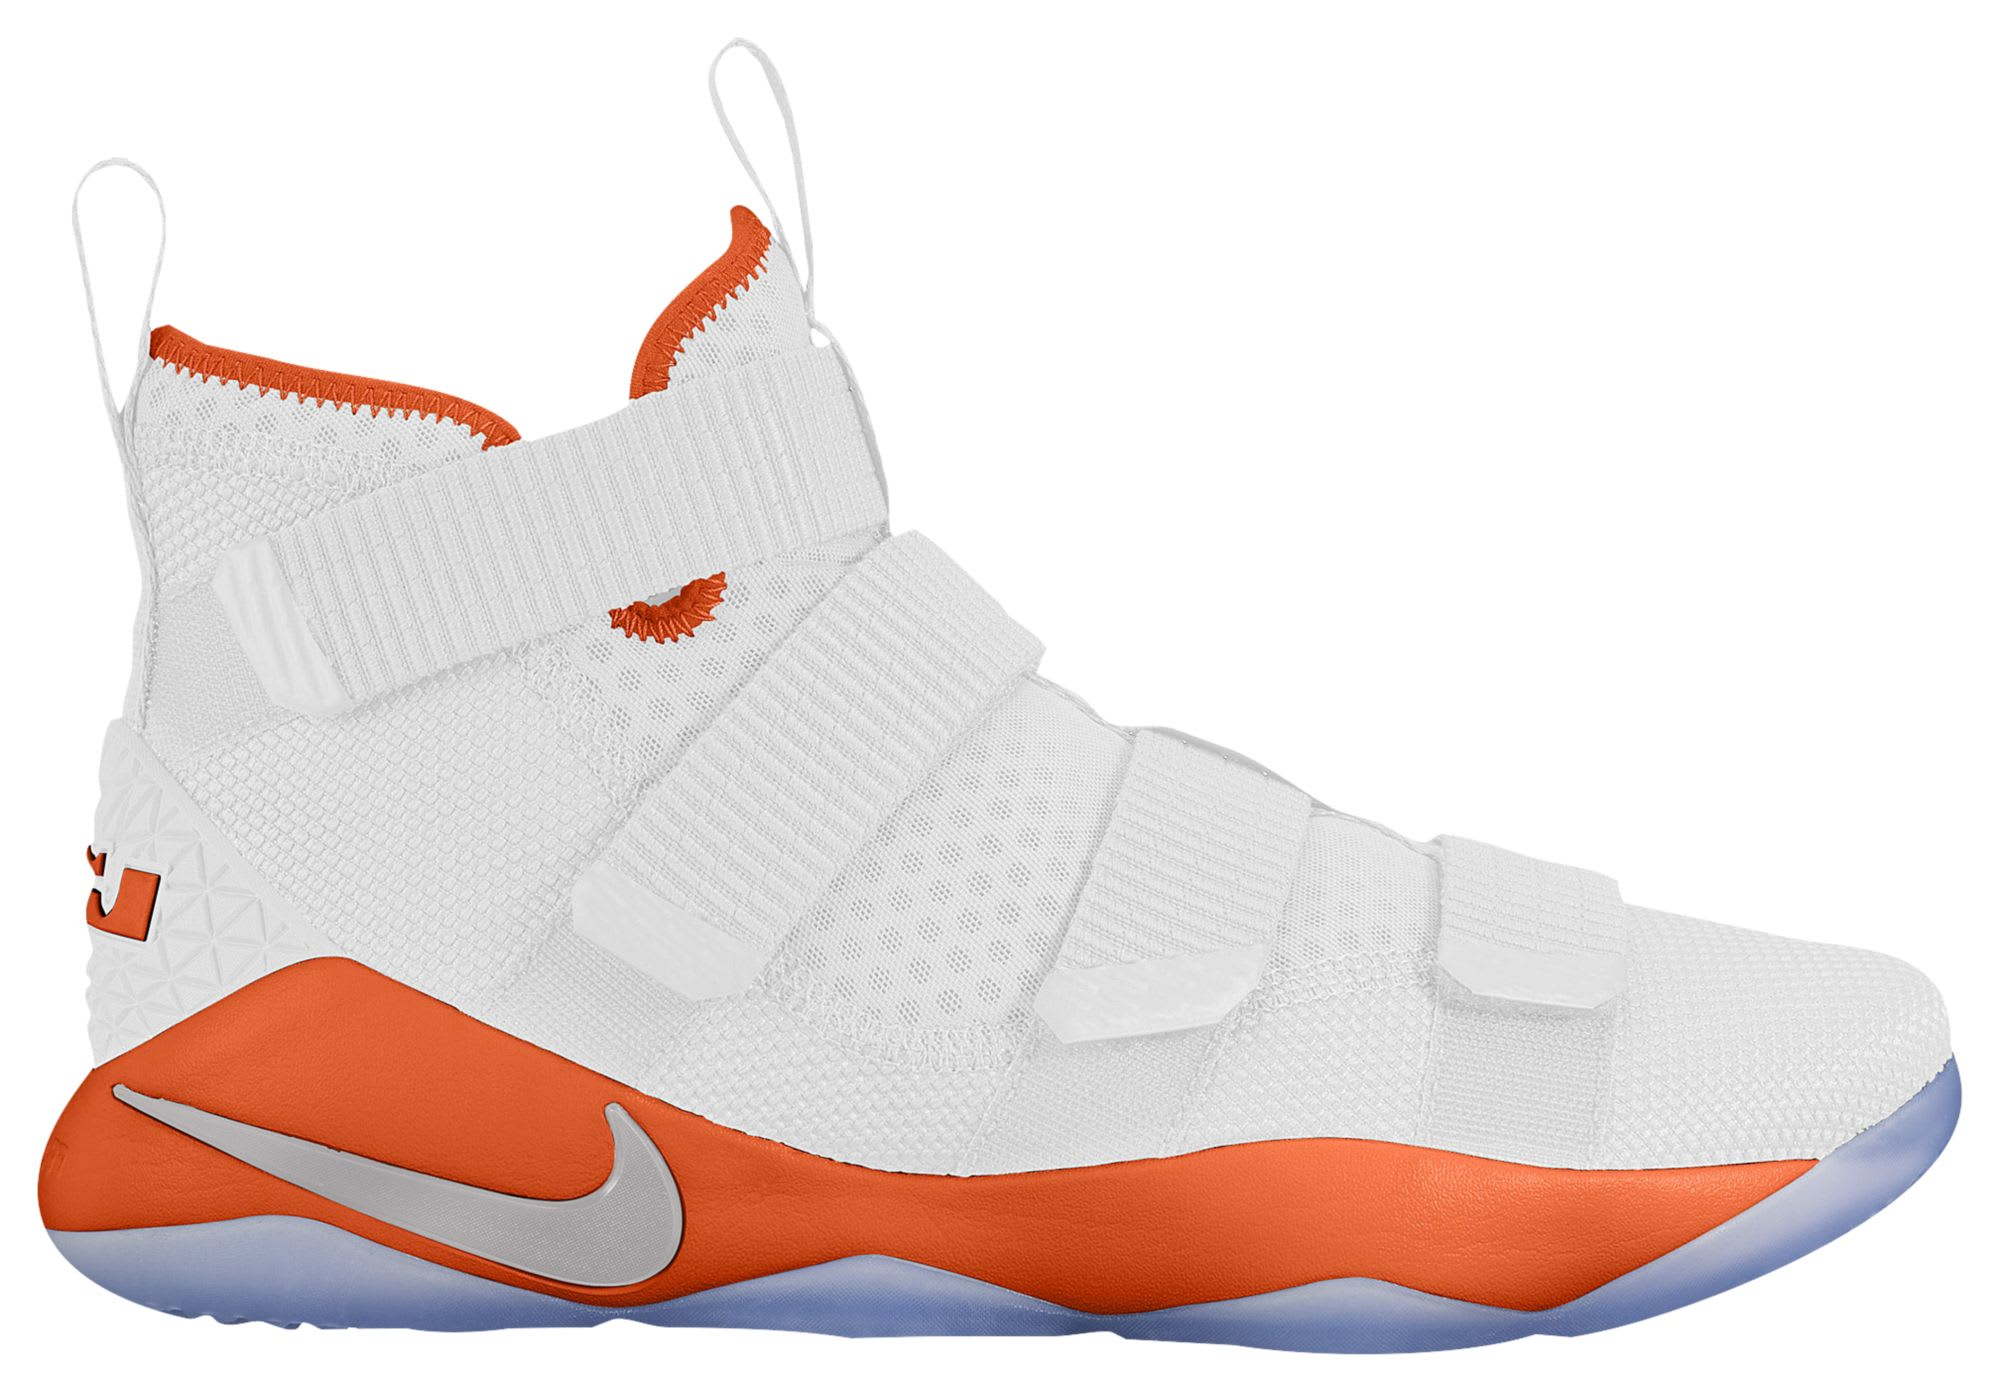 Nike LeBron Soldier 11 TB White Orange